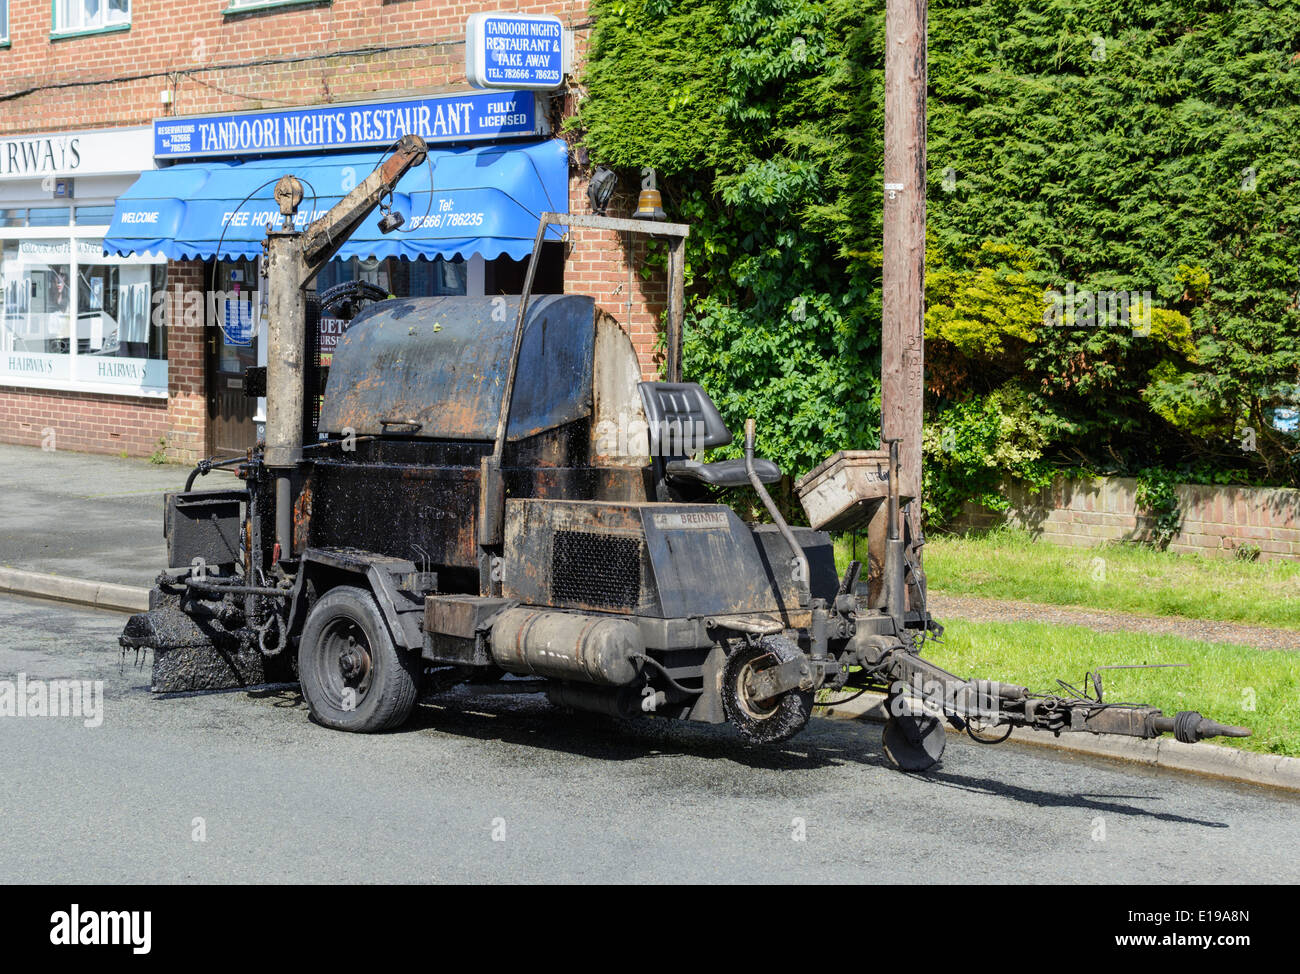 Tarmac machine parked at the side of the road. - Stock Image